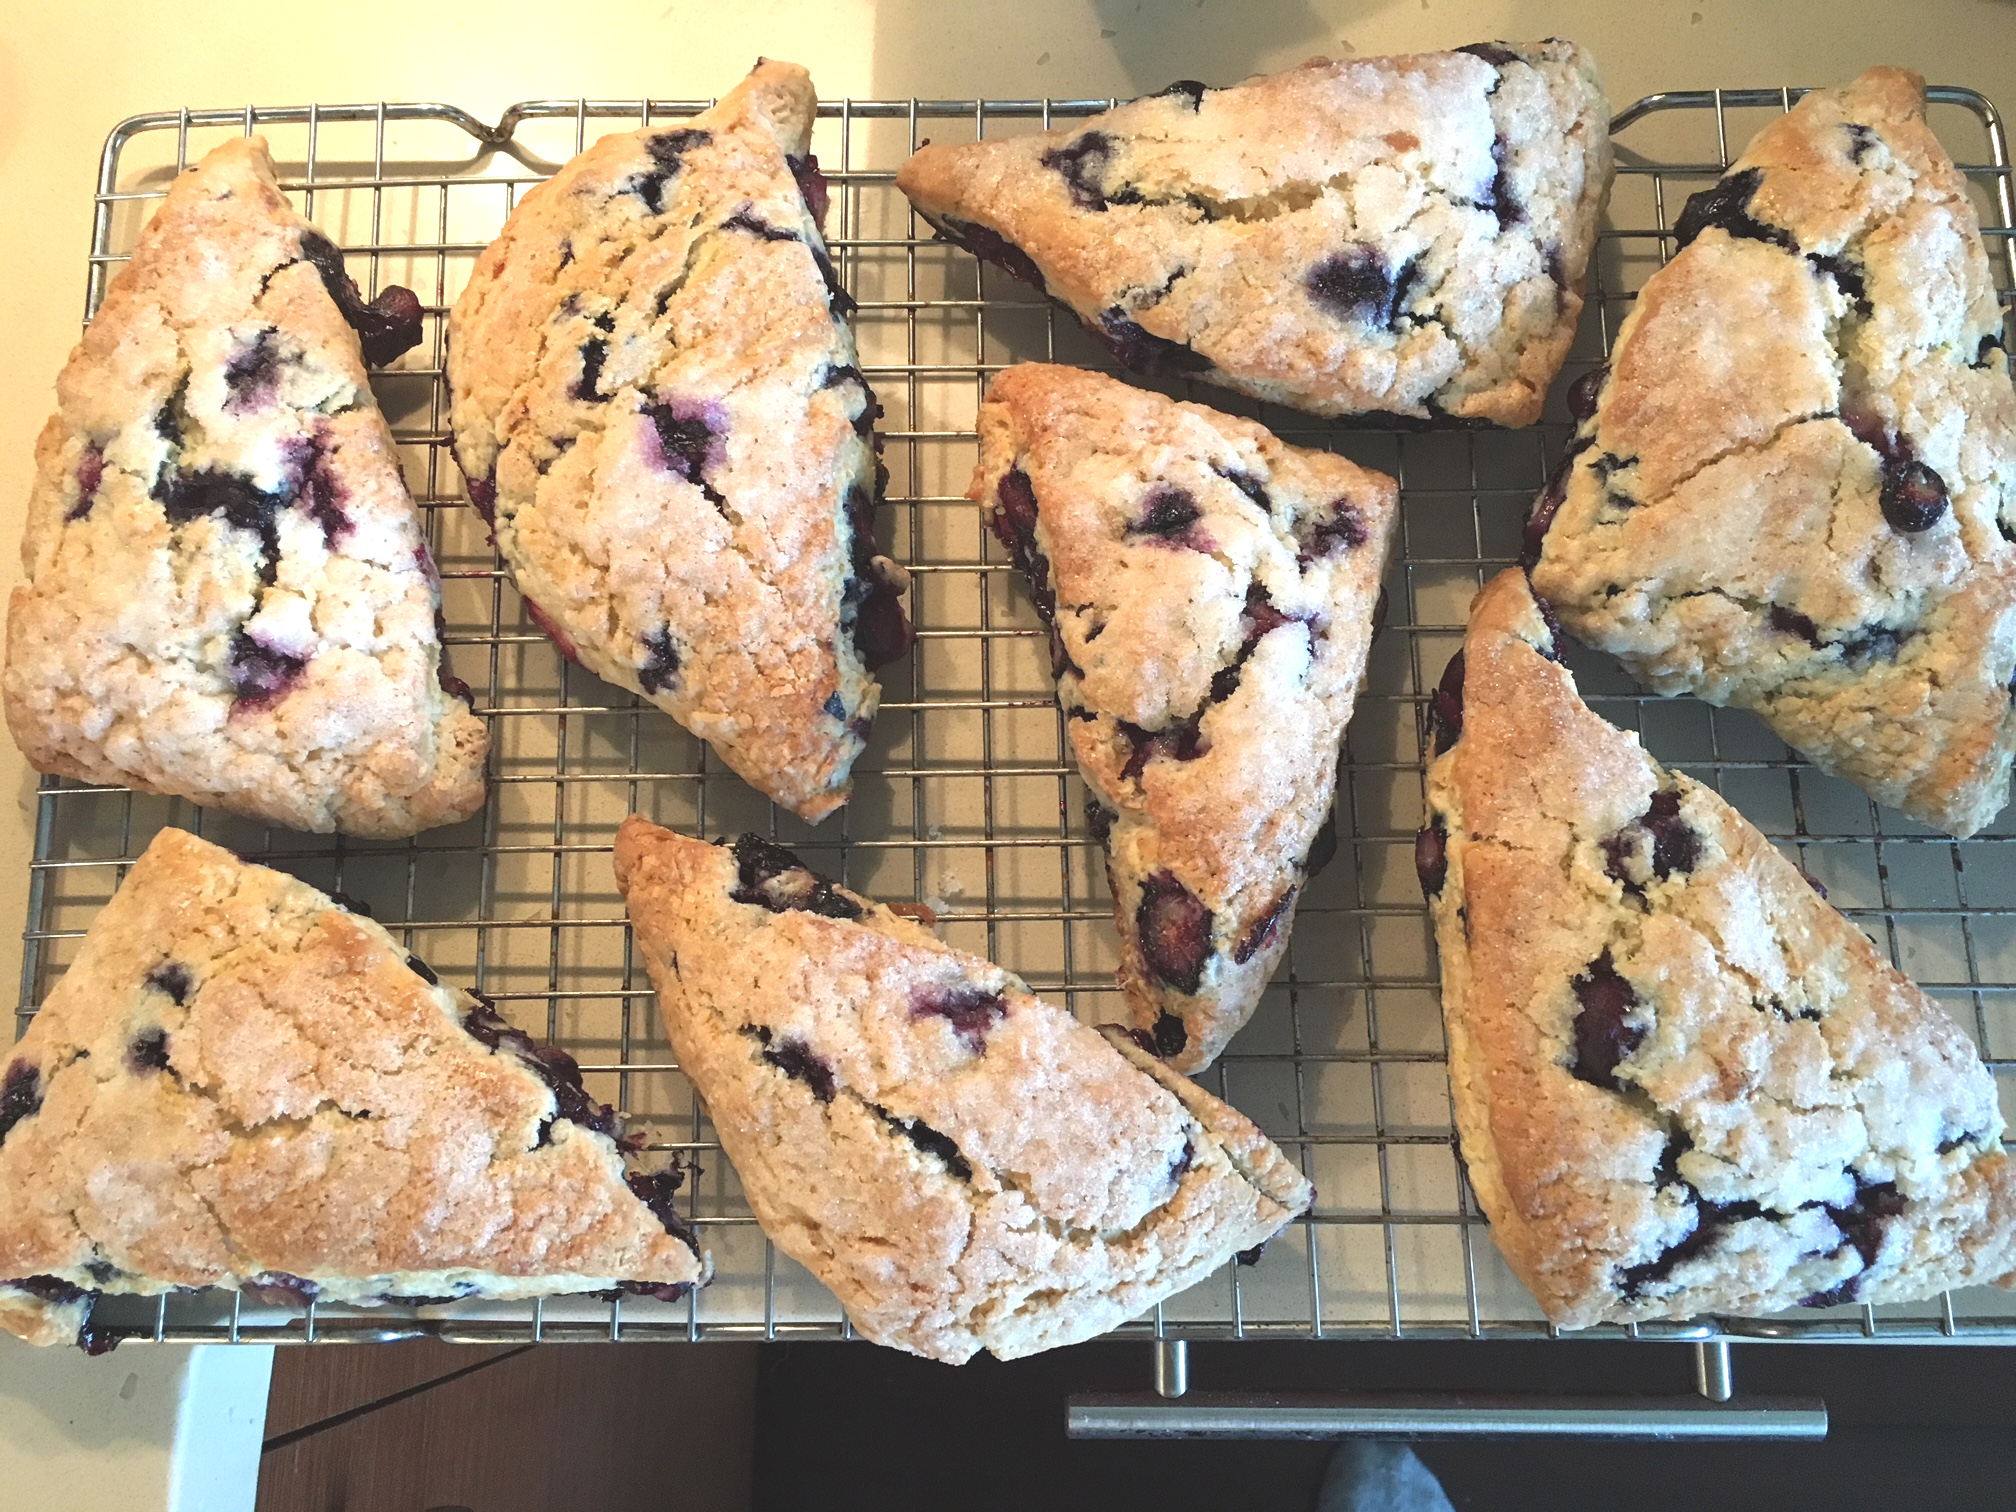 Blueberry scones made by South Waterfront resident and cook Terry Clancy.